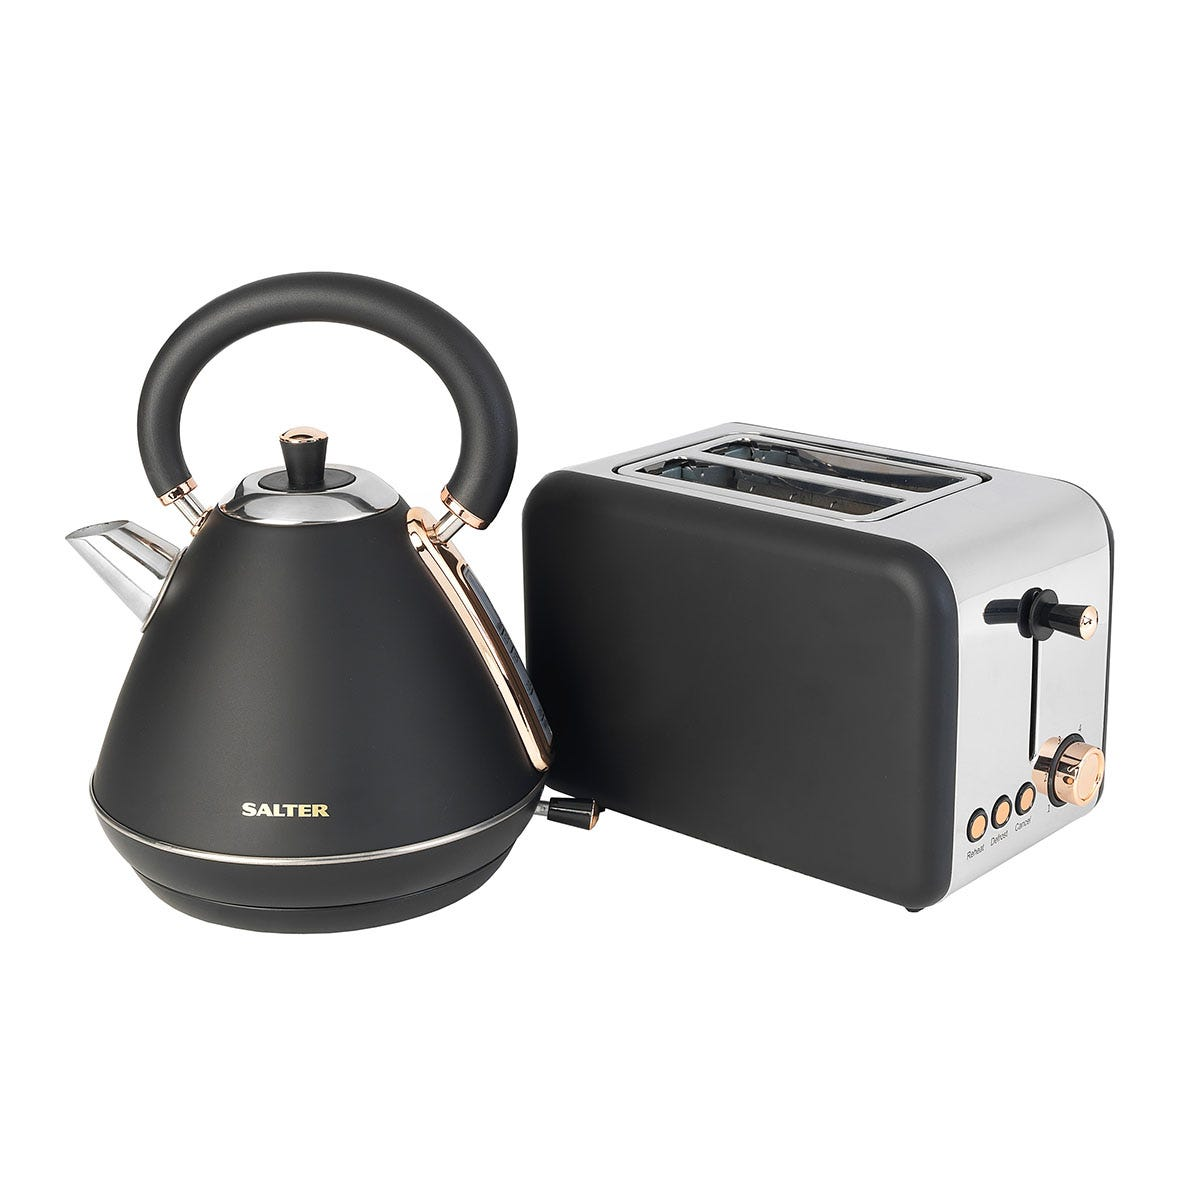 Salter COMBO-3646 1.7L 3KW Pyramid Kettle and 850W 2-Slice Toaster - Rose Gold